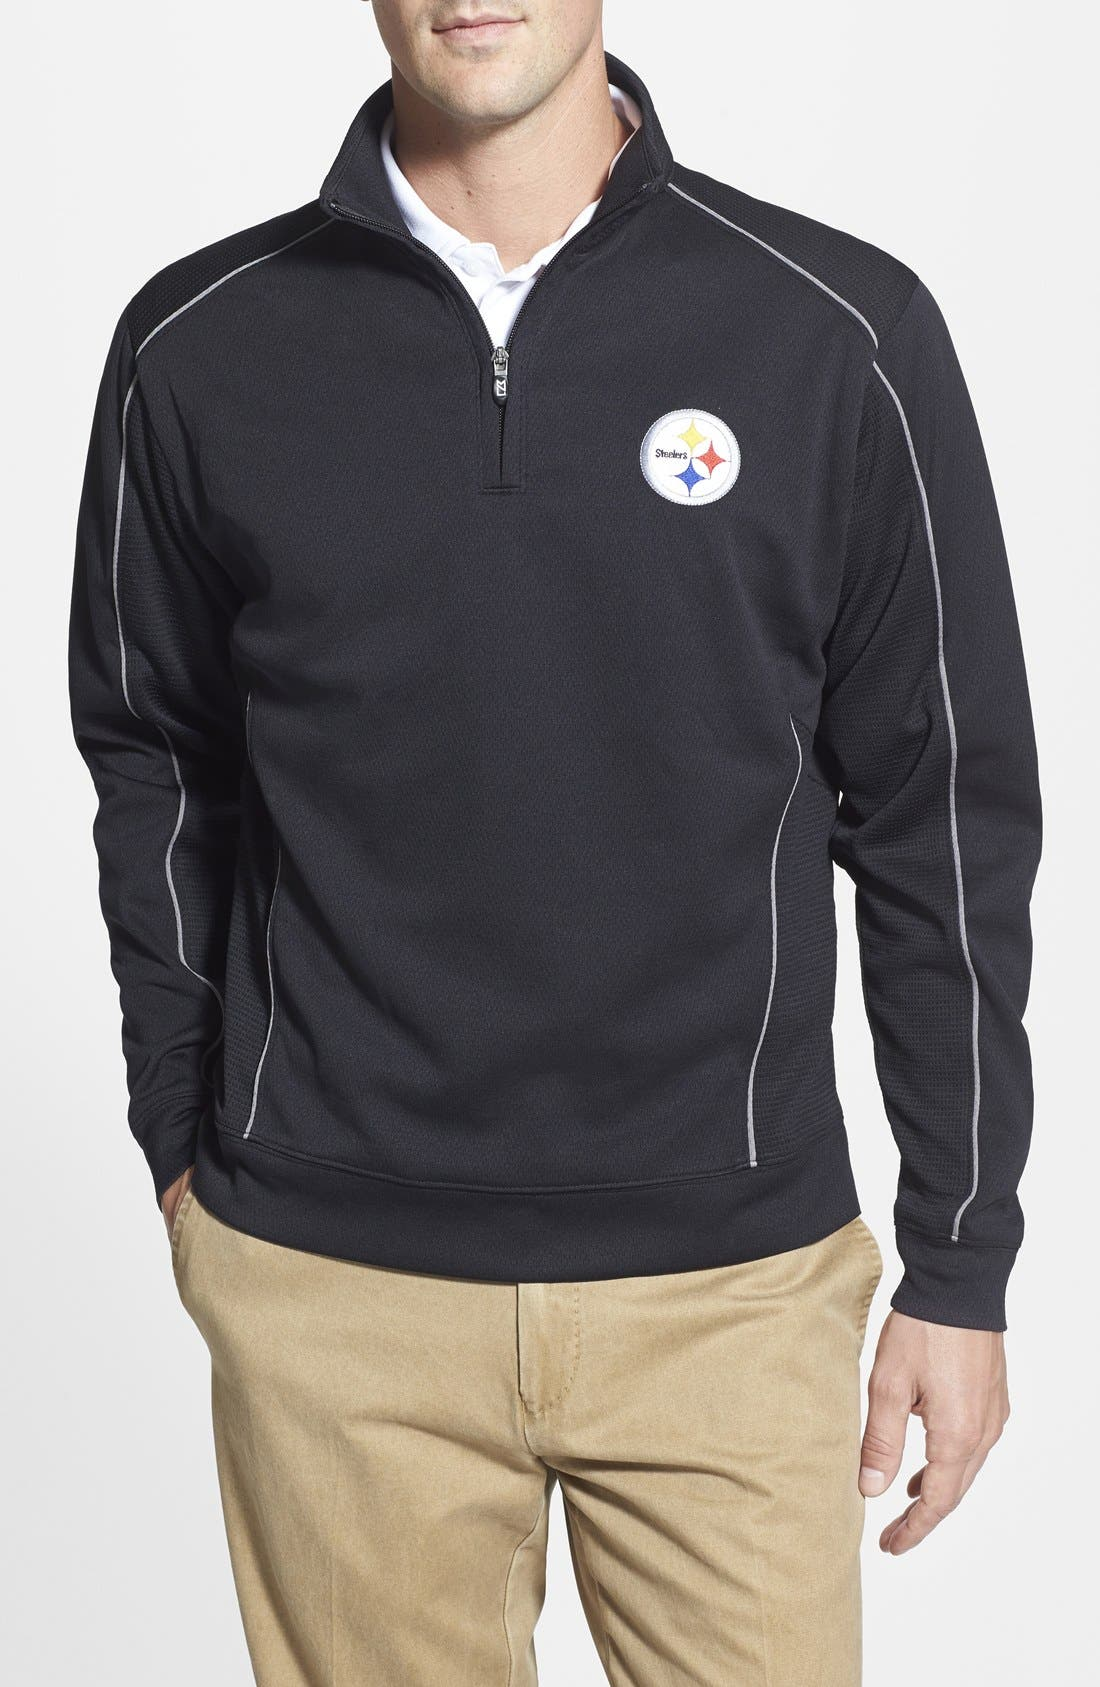 'Pittsburgh Steelers - Edge' DryTec Moisture Wicking Half Zip Pullover,                             Main thumbnail 1, color,                             001